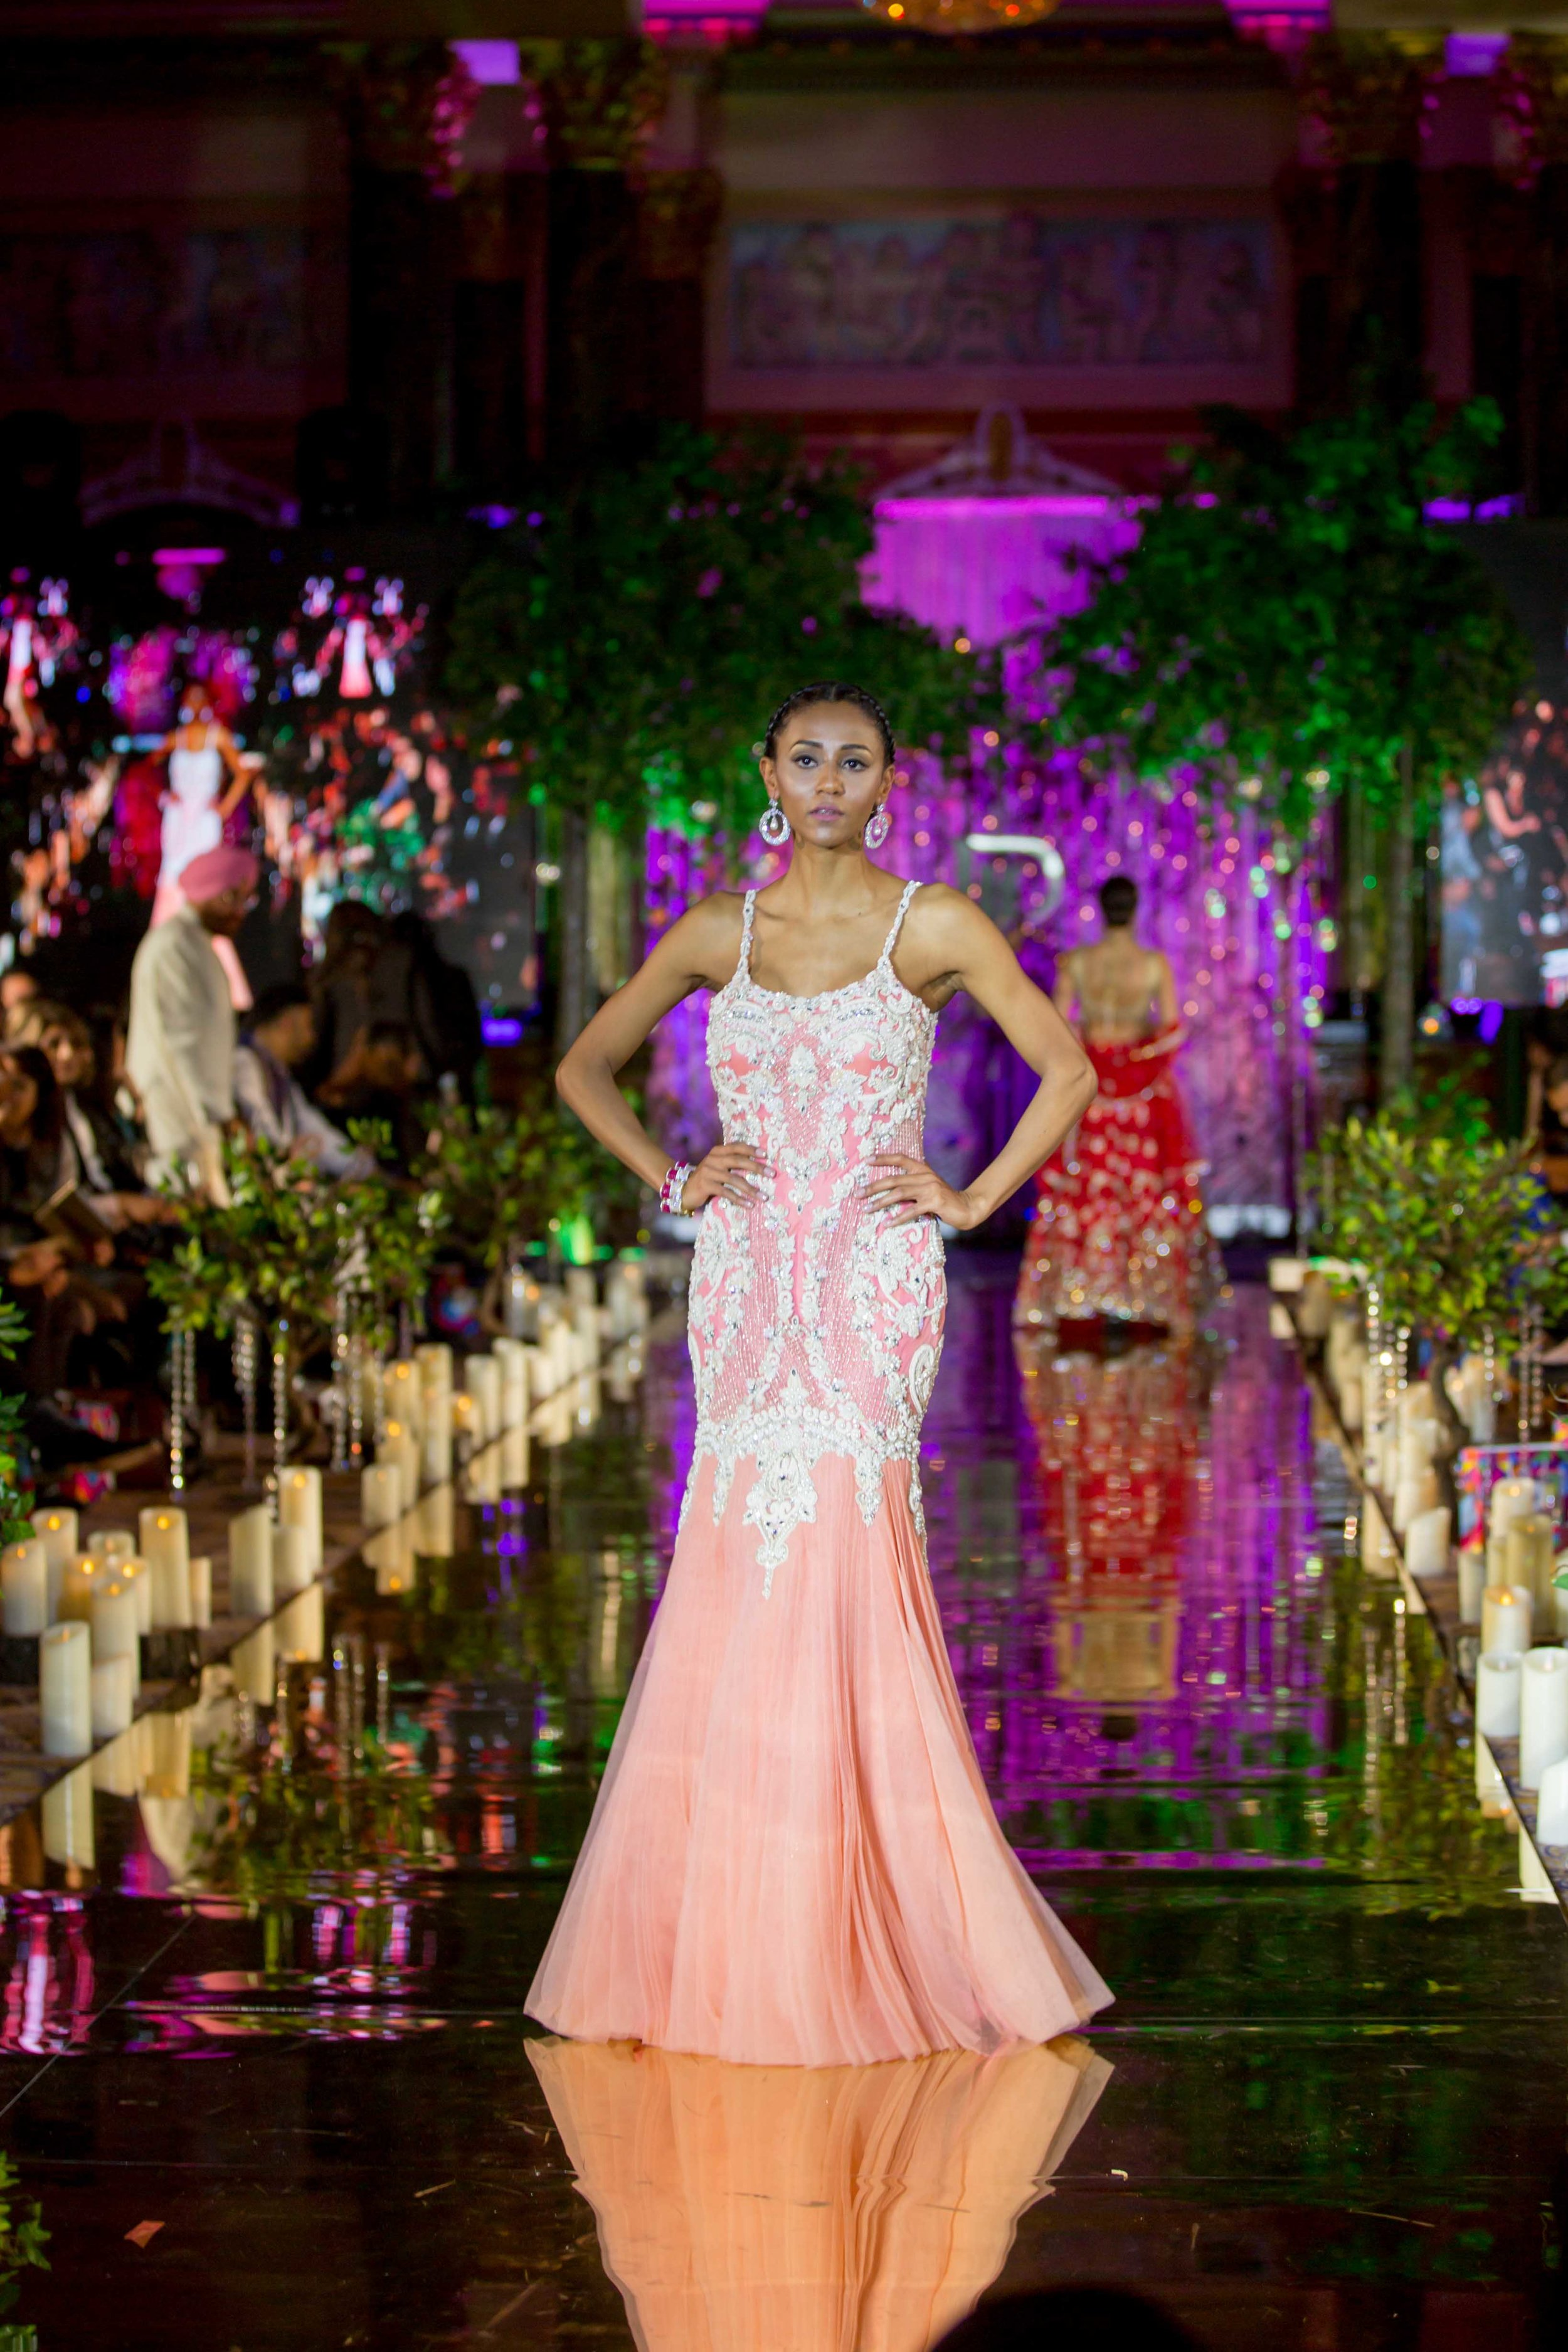 IPLF-IPL-Indian-Pakistani-London-Fashion-London-Week-catwalk-photographer-natalia-smith-photography-ekta-solanki-42.jpg